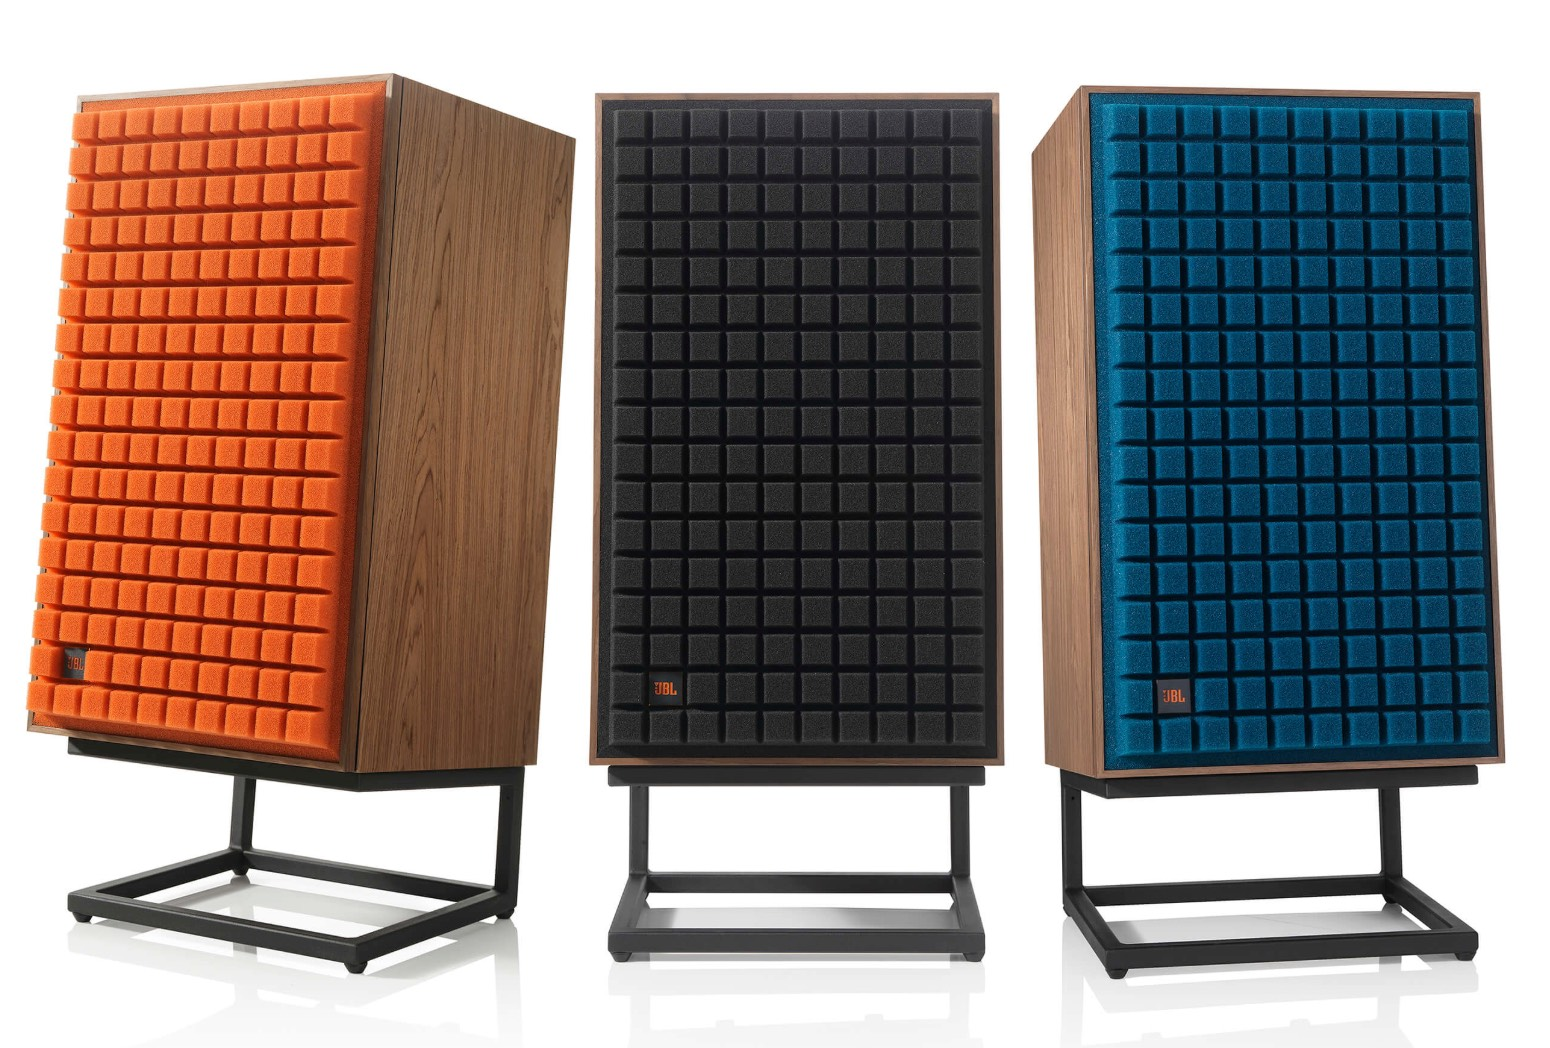 JBL reissues their classic 1970s speakers with the fantastic space